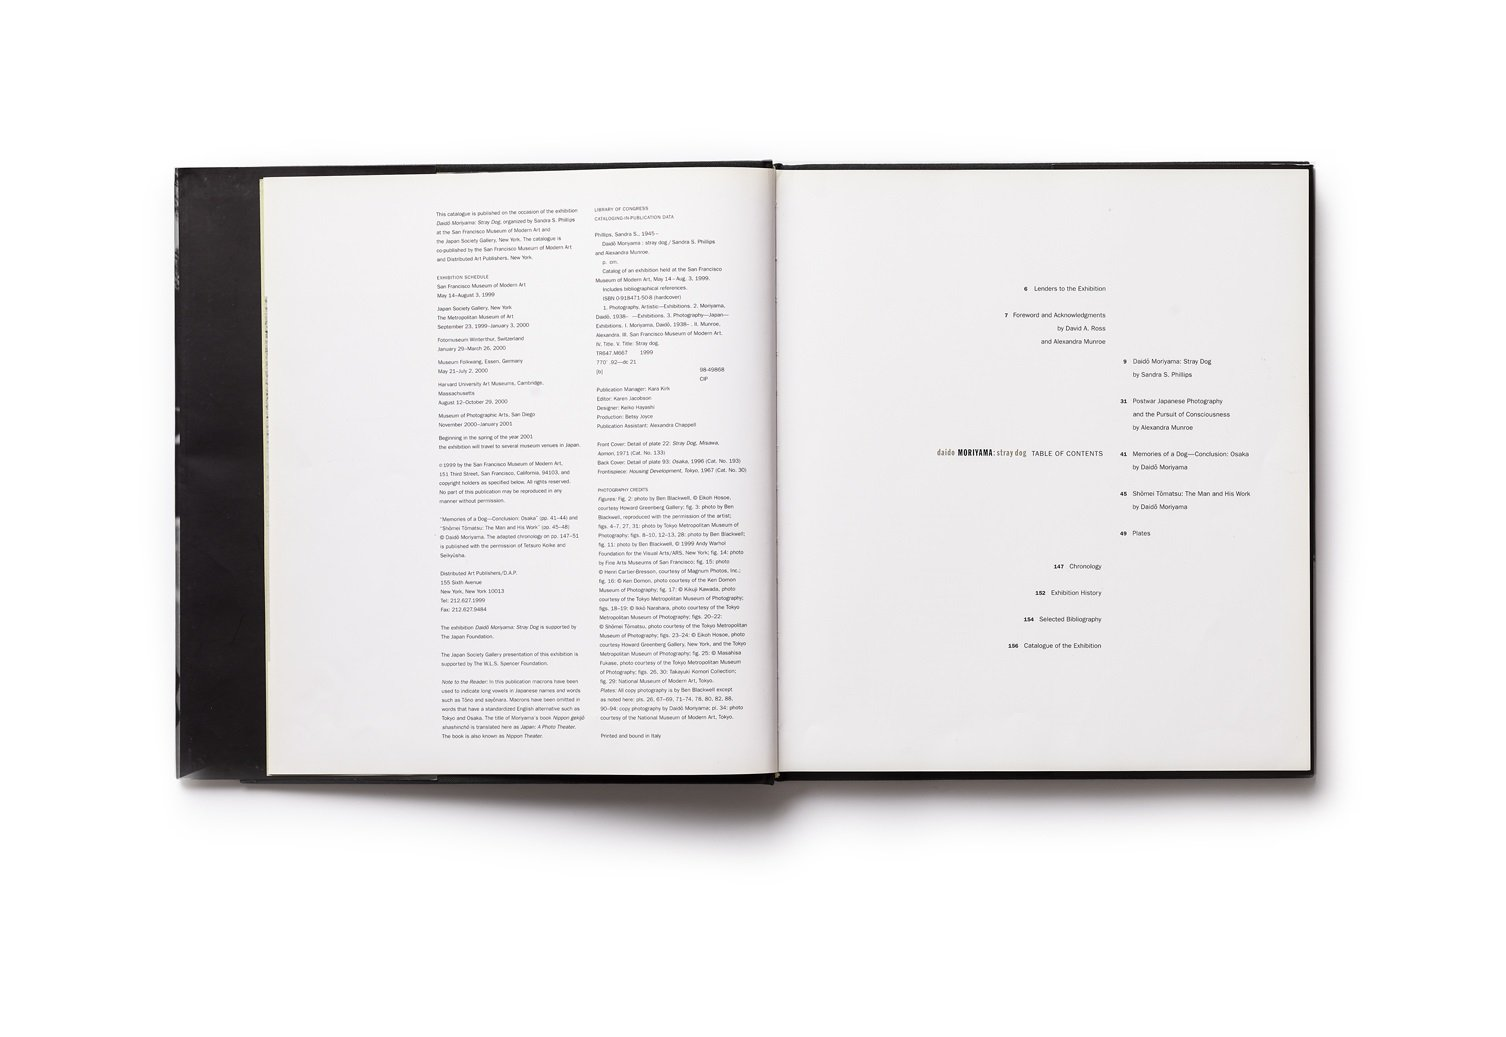 Daido Moriyama publication table of contents